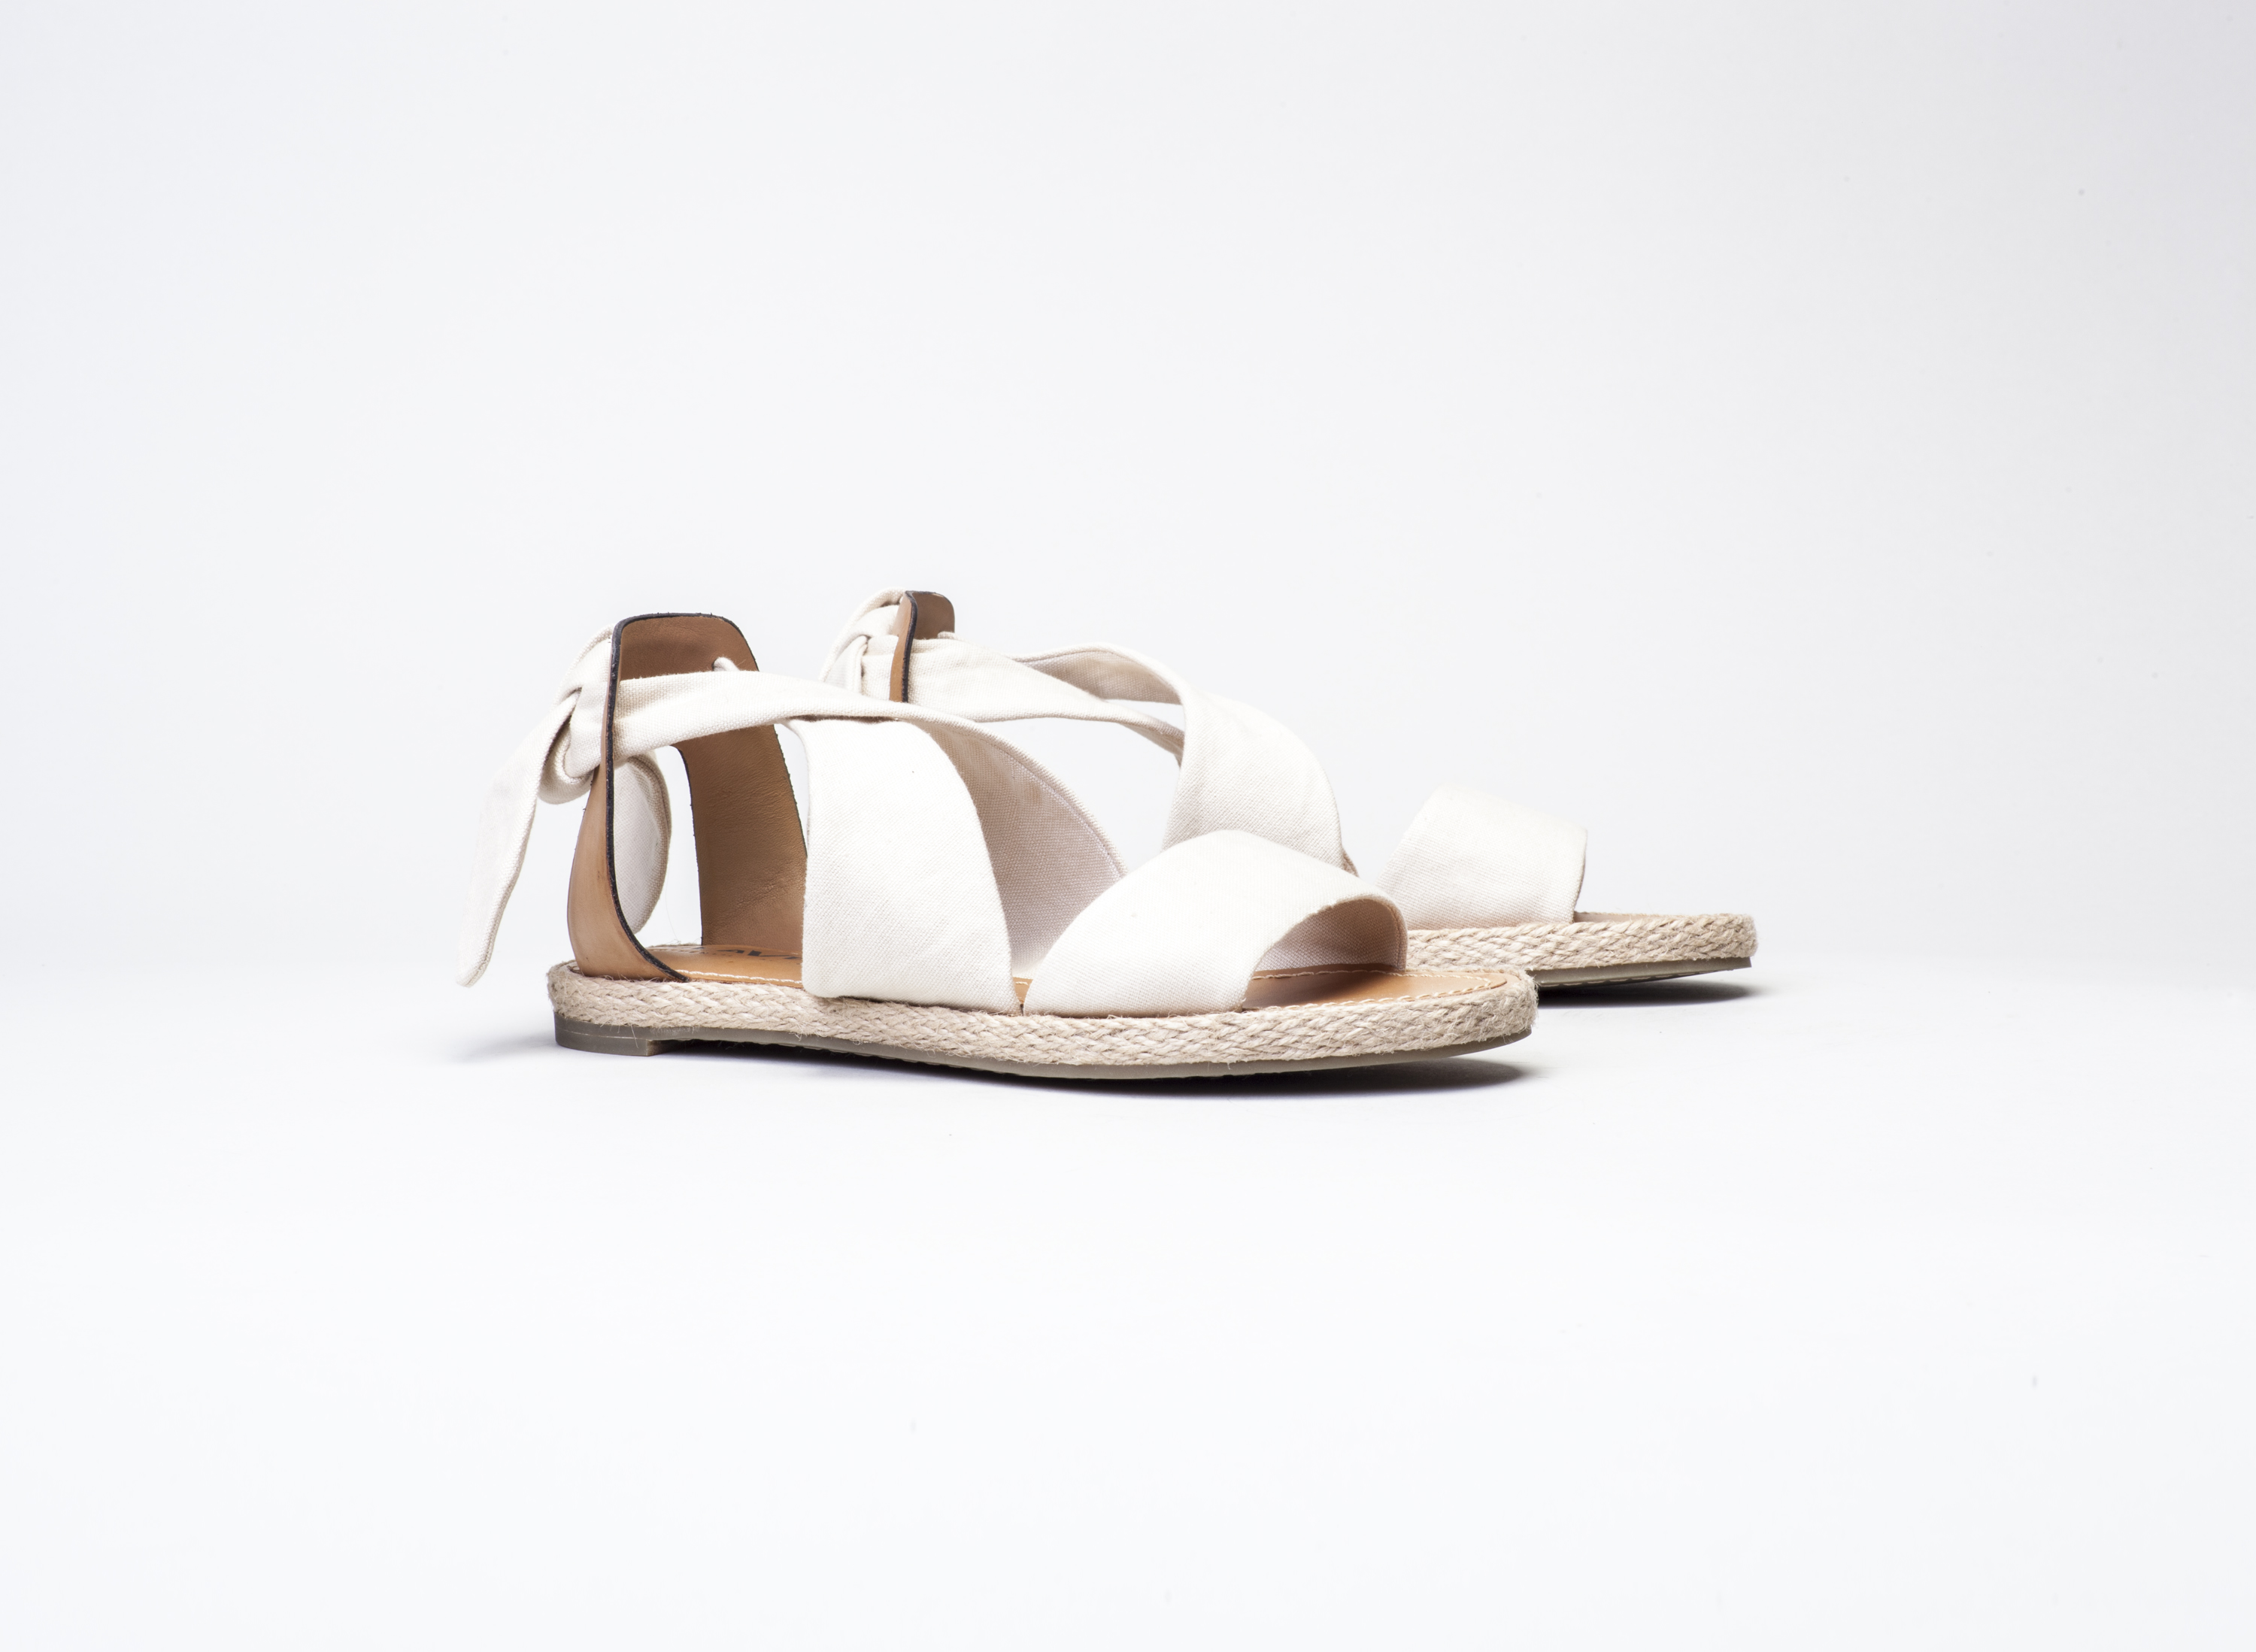 Bayside_Sandal_Canvas_Leather_Natural